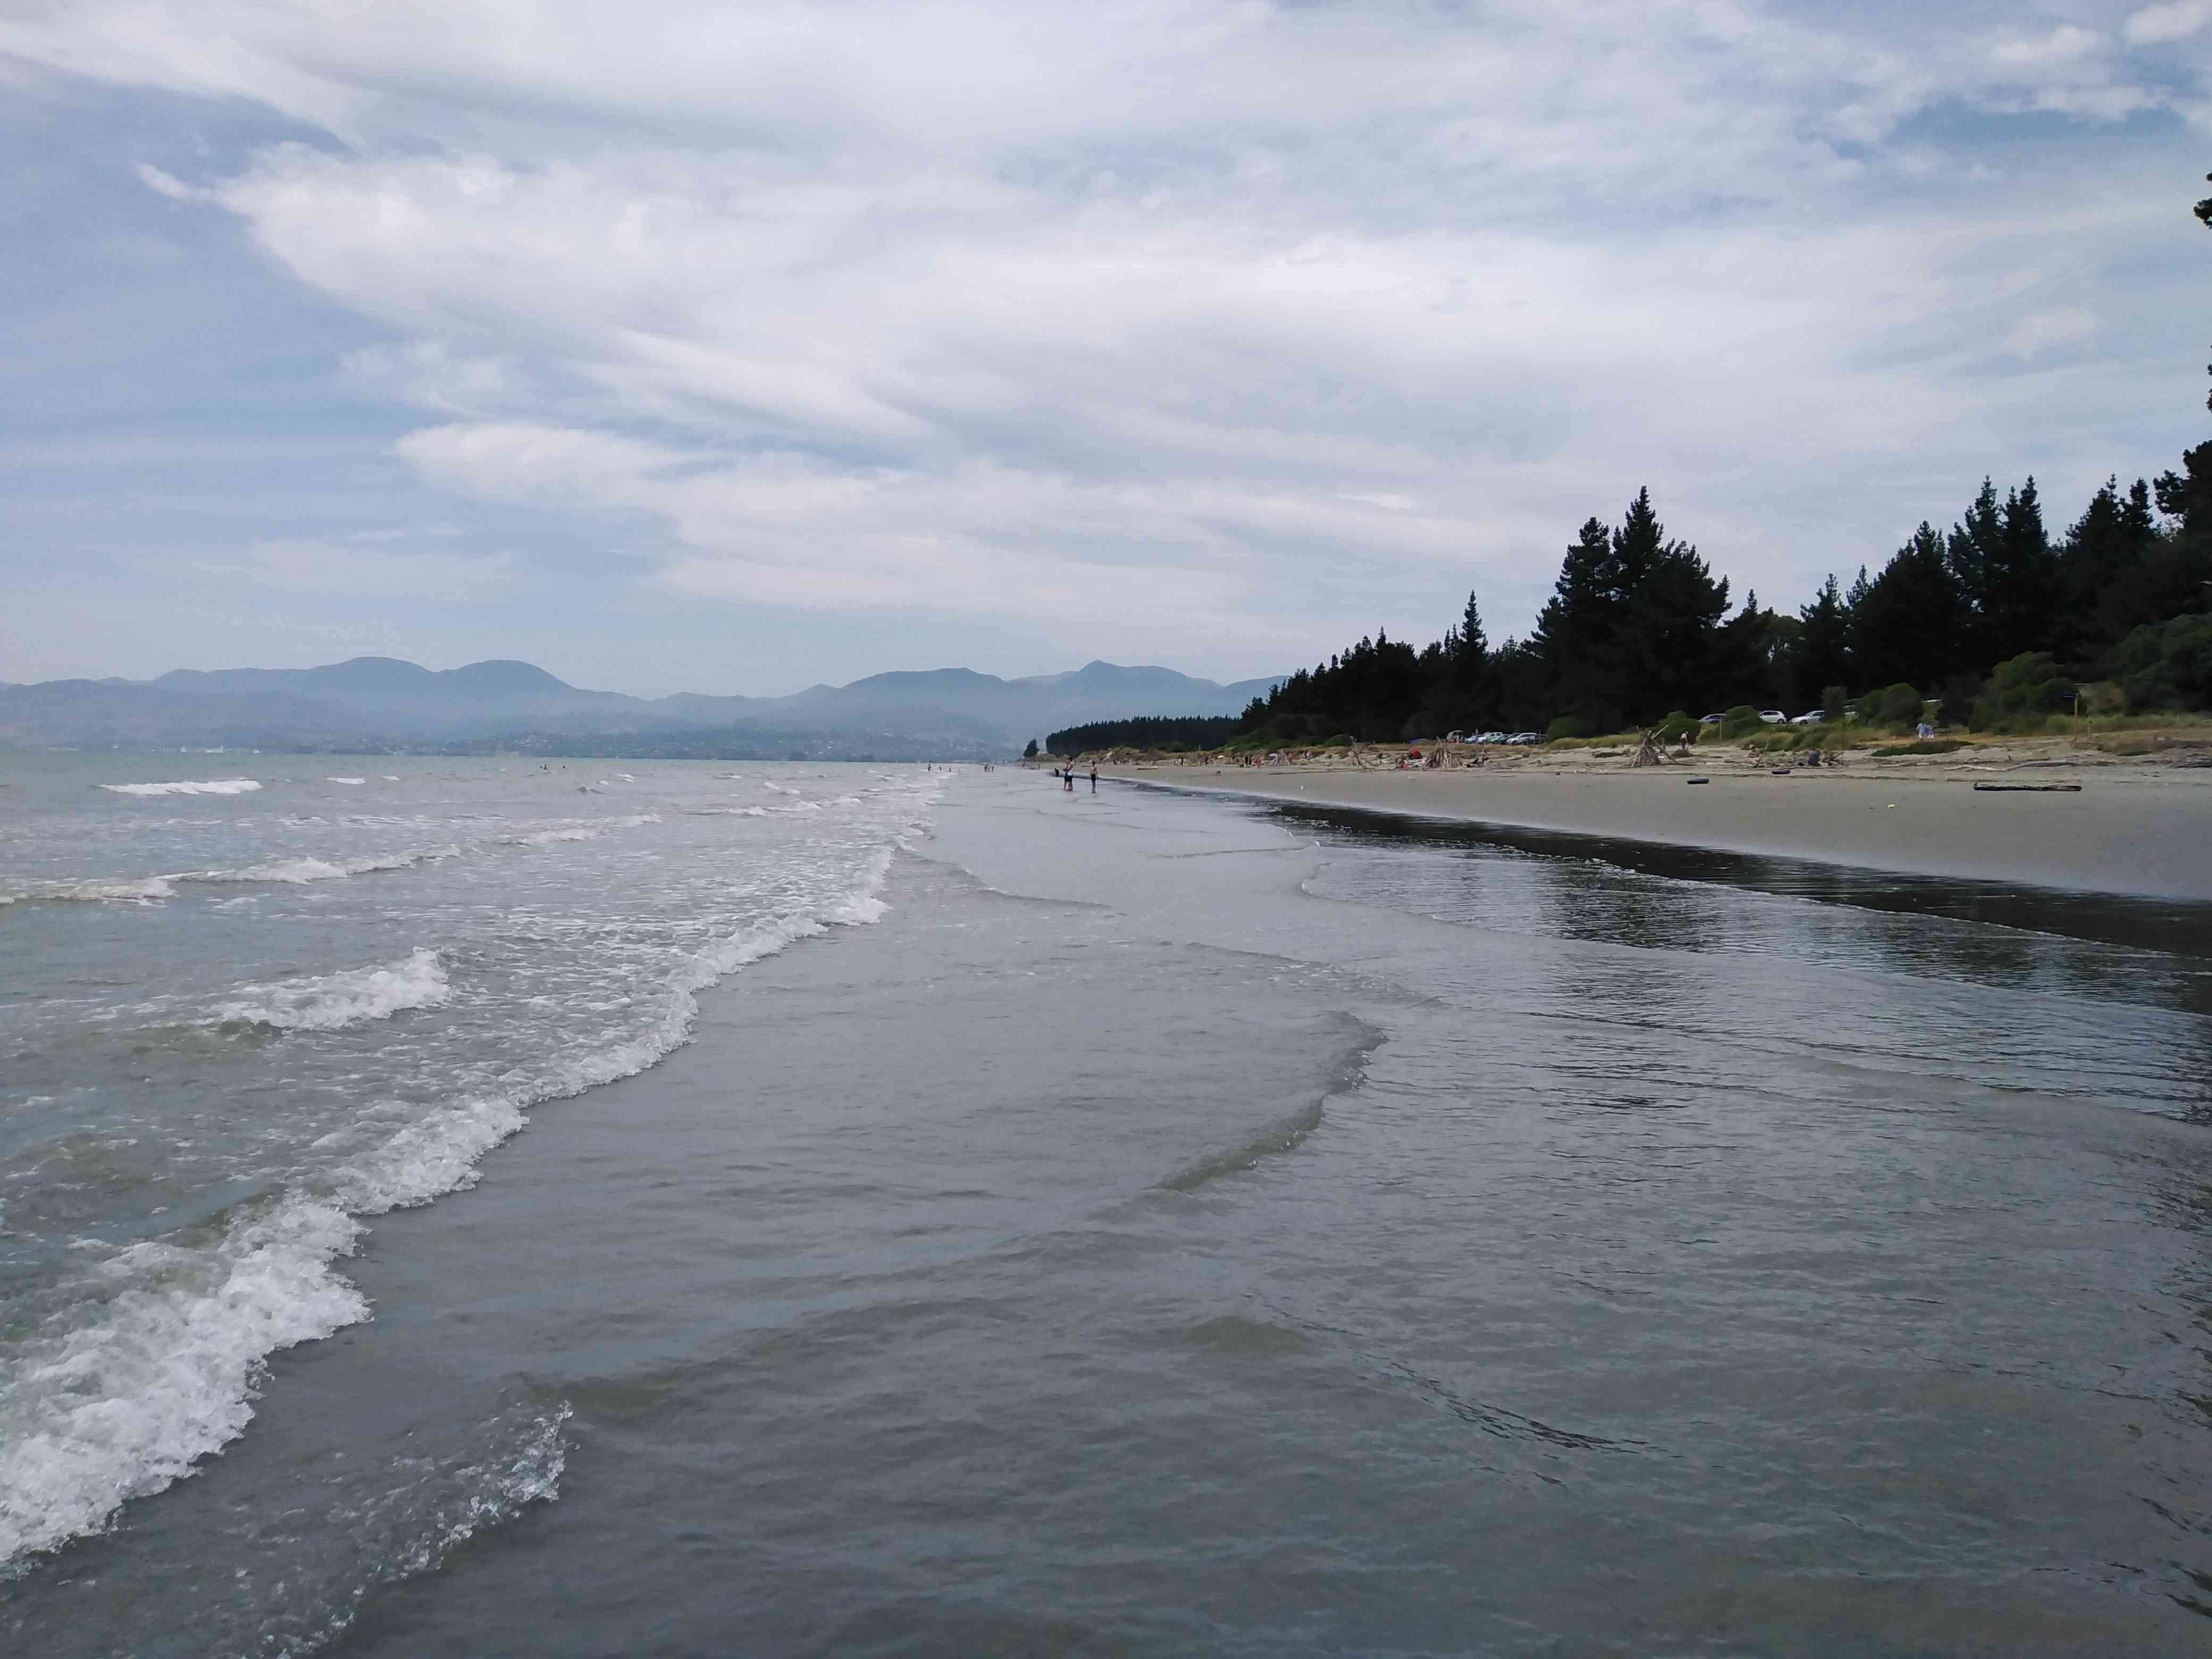 waves lapping at shore with pine trees